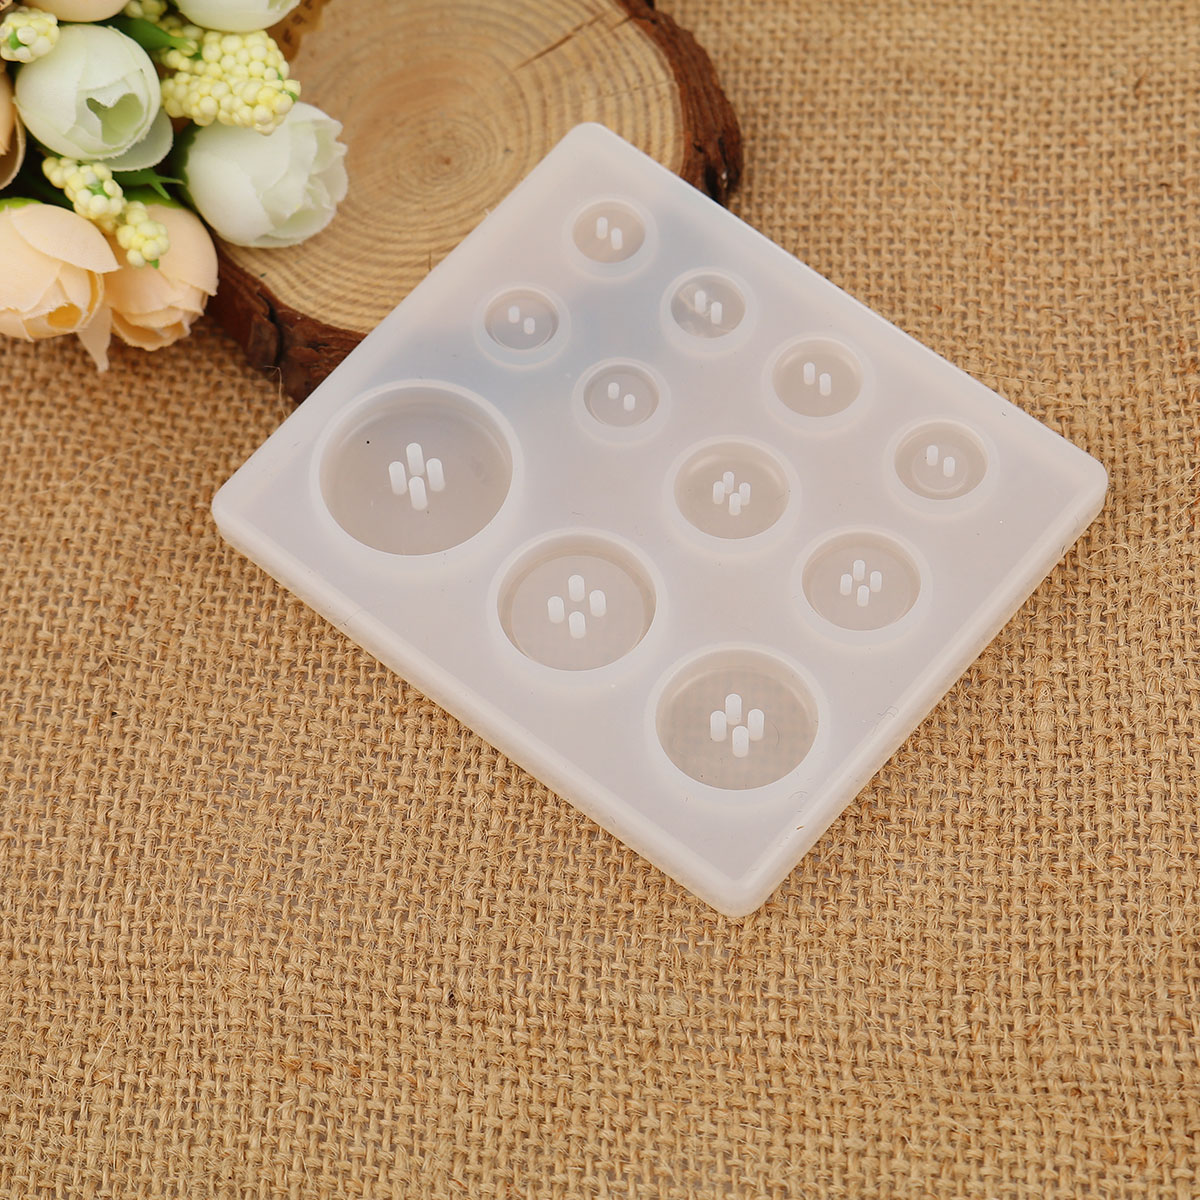 Silicone Resin Mold For Jewelry DIY Making Rectangle White Button Pattern Jewelry Making Silicone Resin Mold